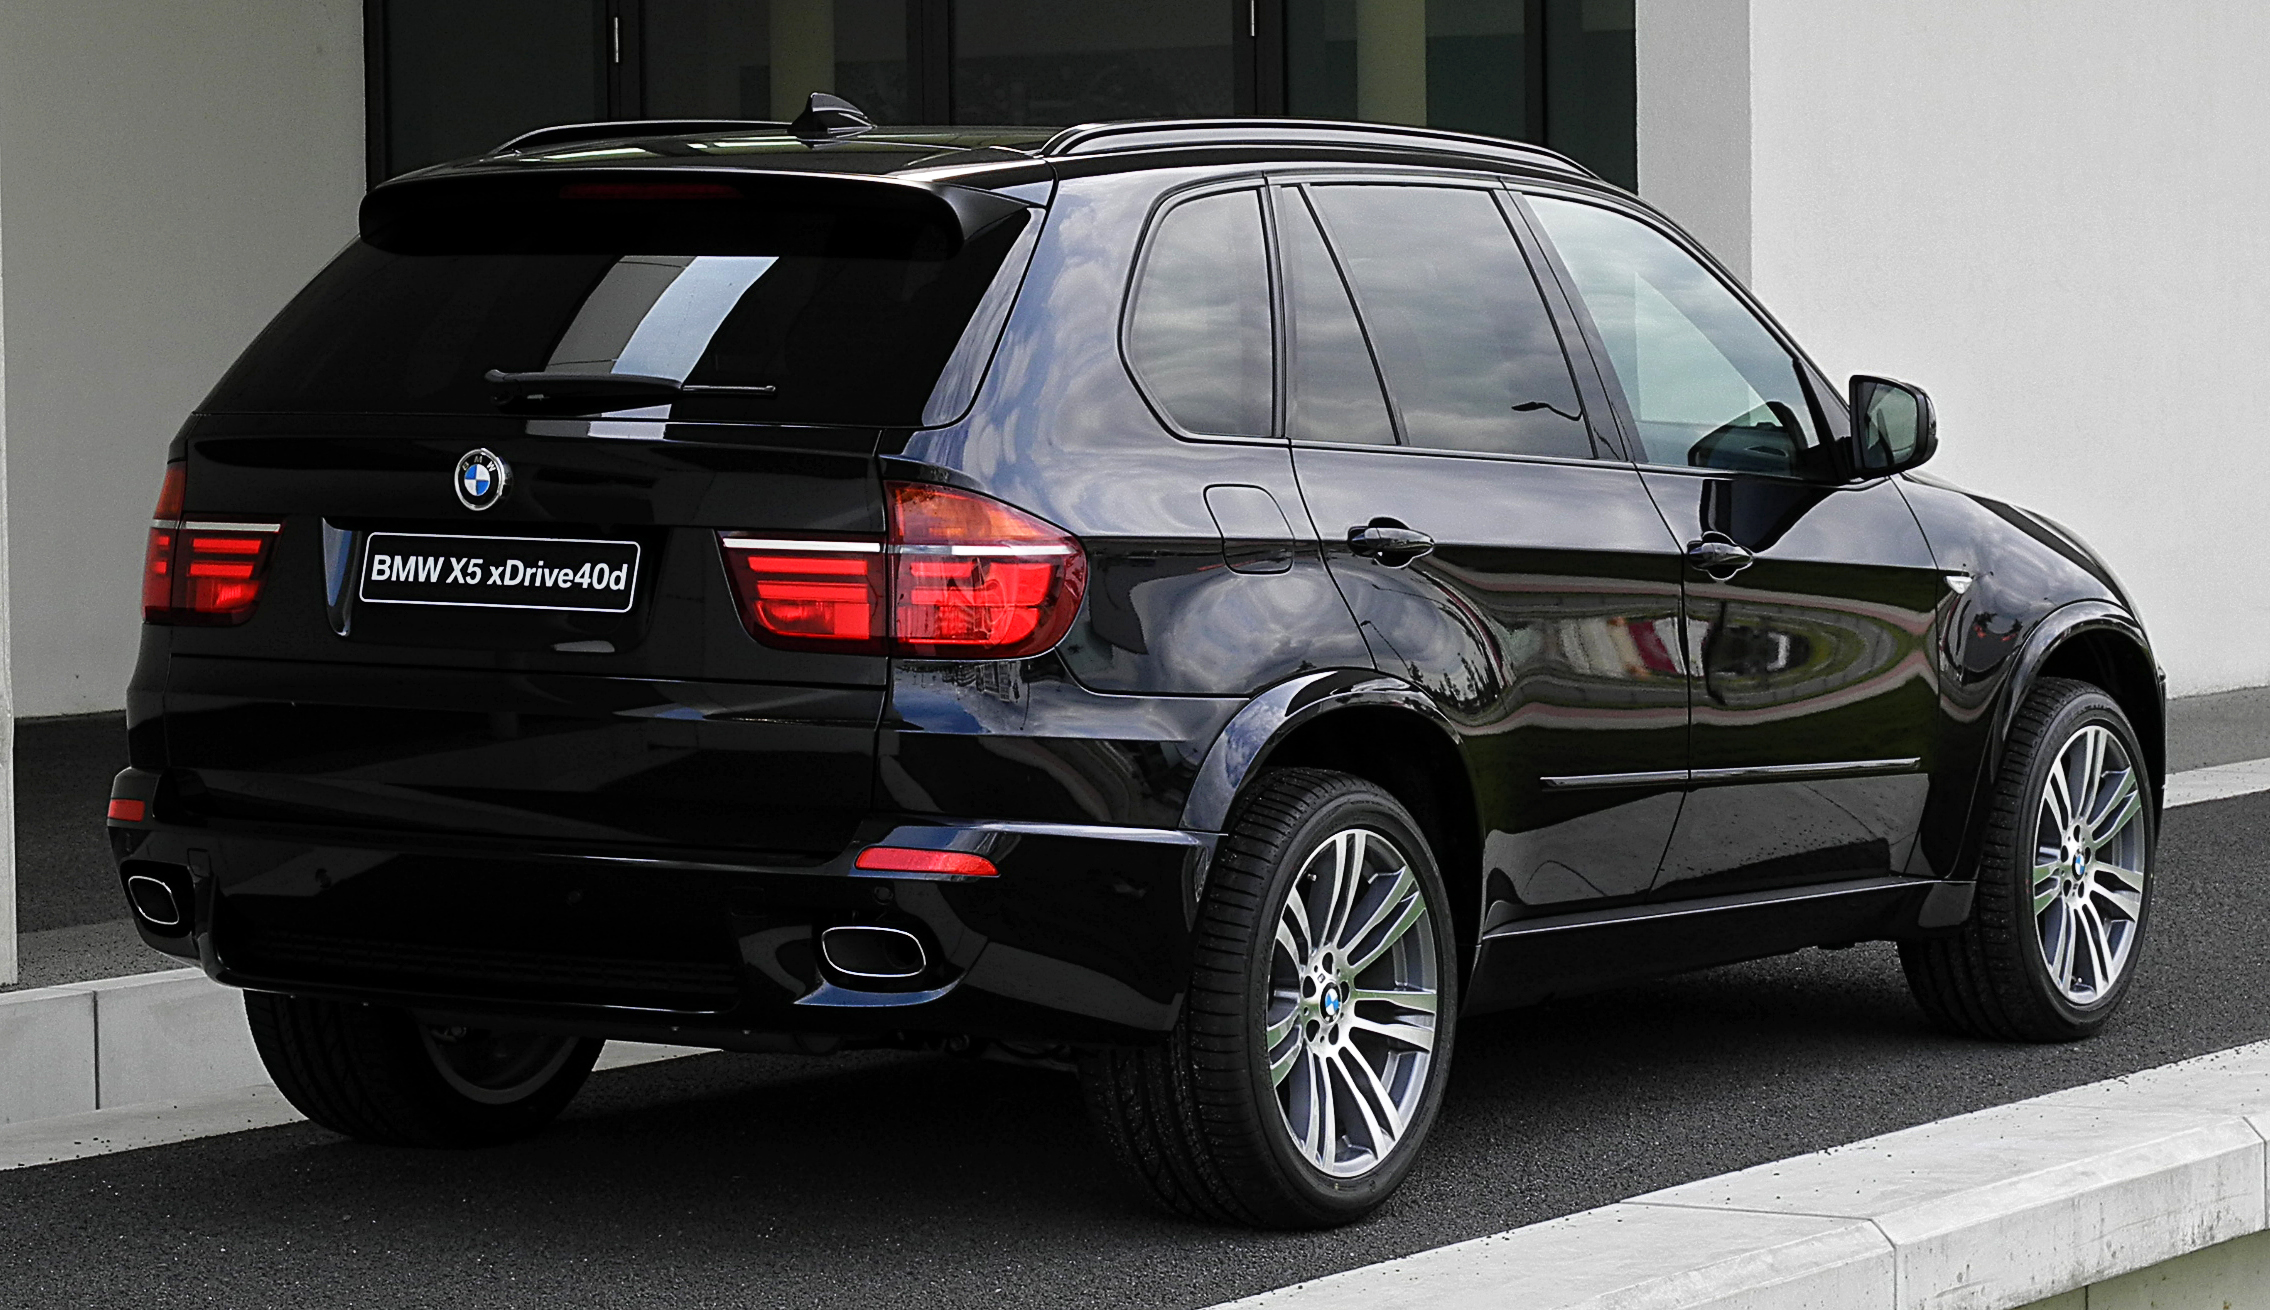 file bmw x5 xdrive40d m sportpaket e70 facelift heckansicht 2 juli 2011 d. Black Bedroom Furniture Sets. Home Design Ideas